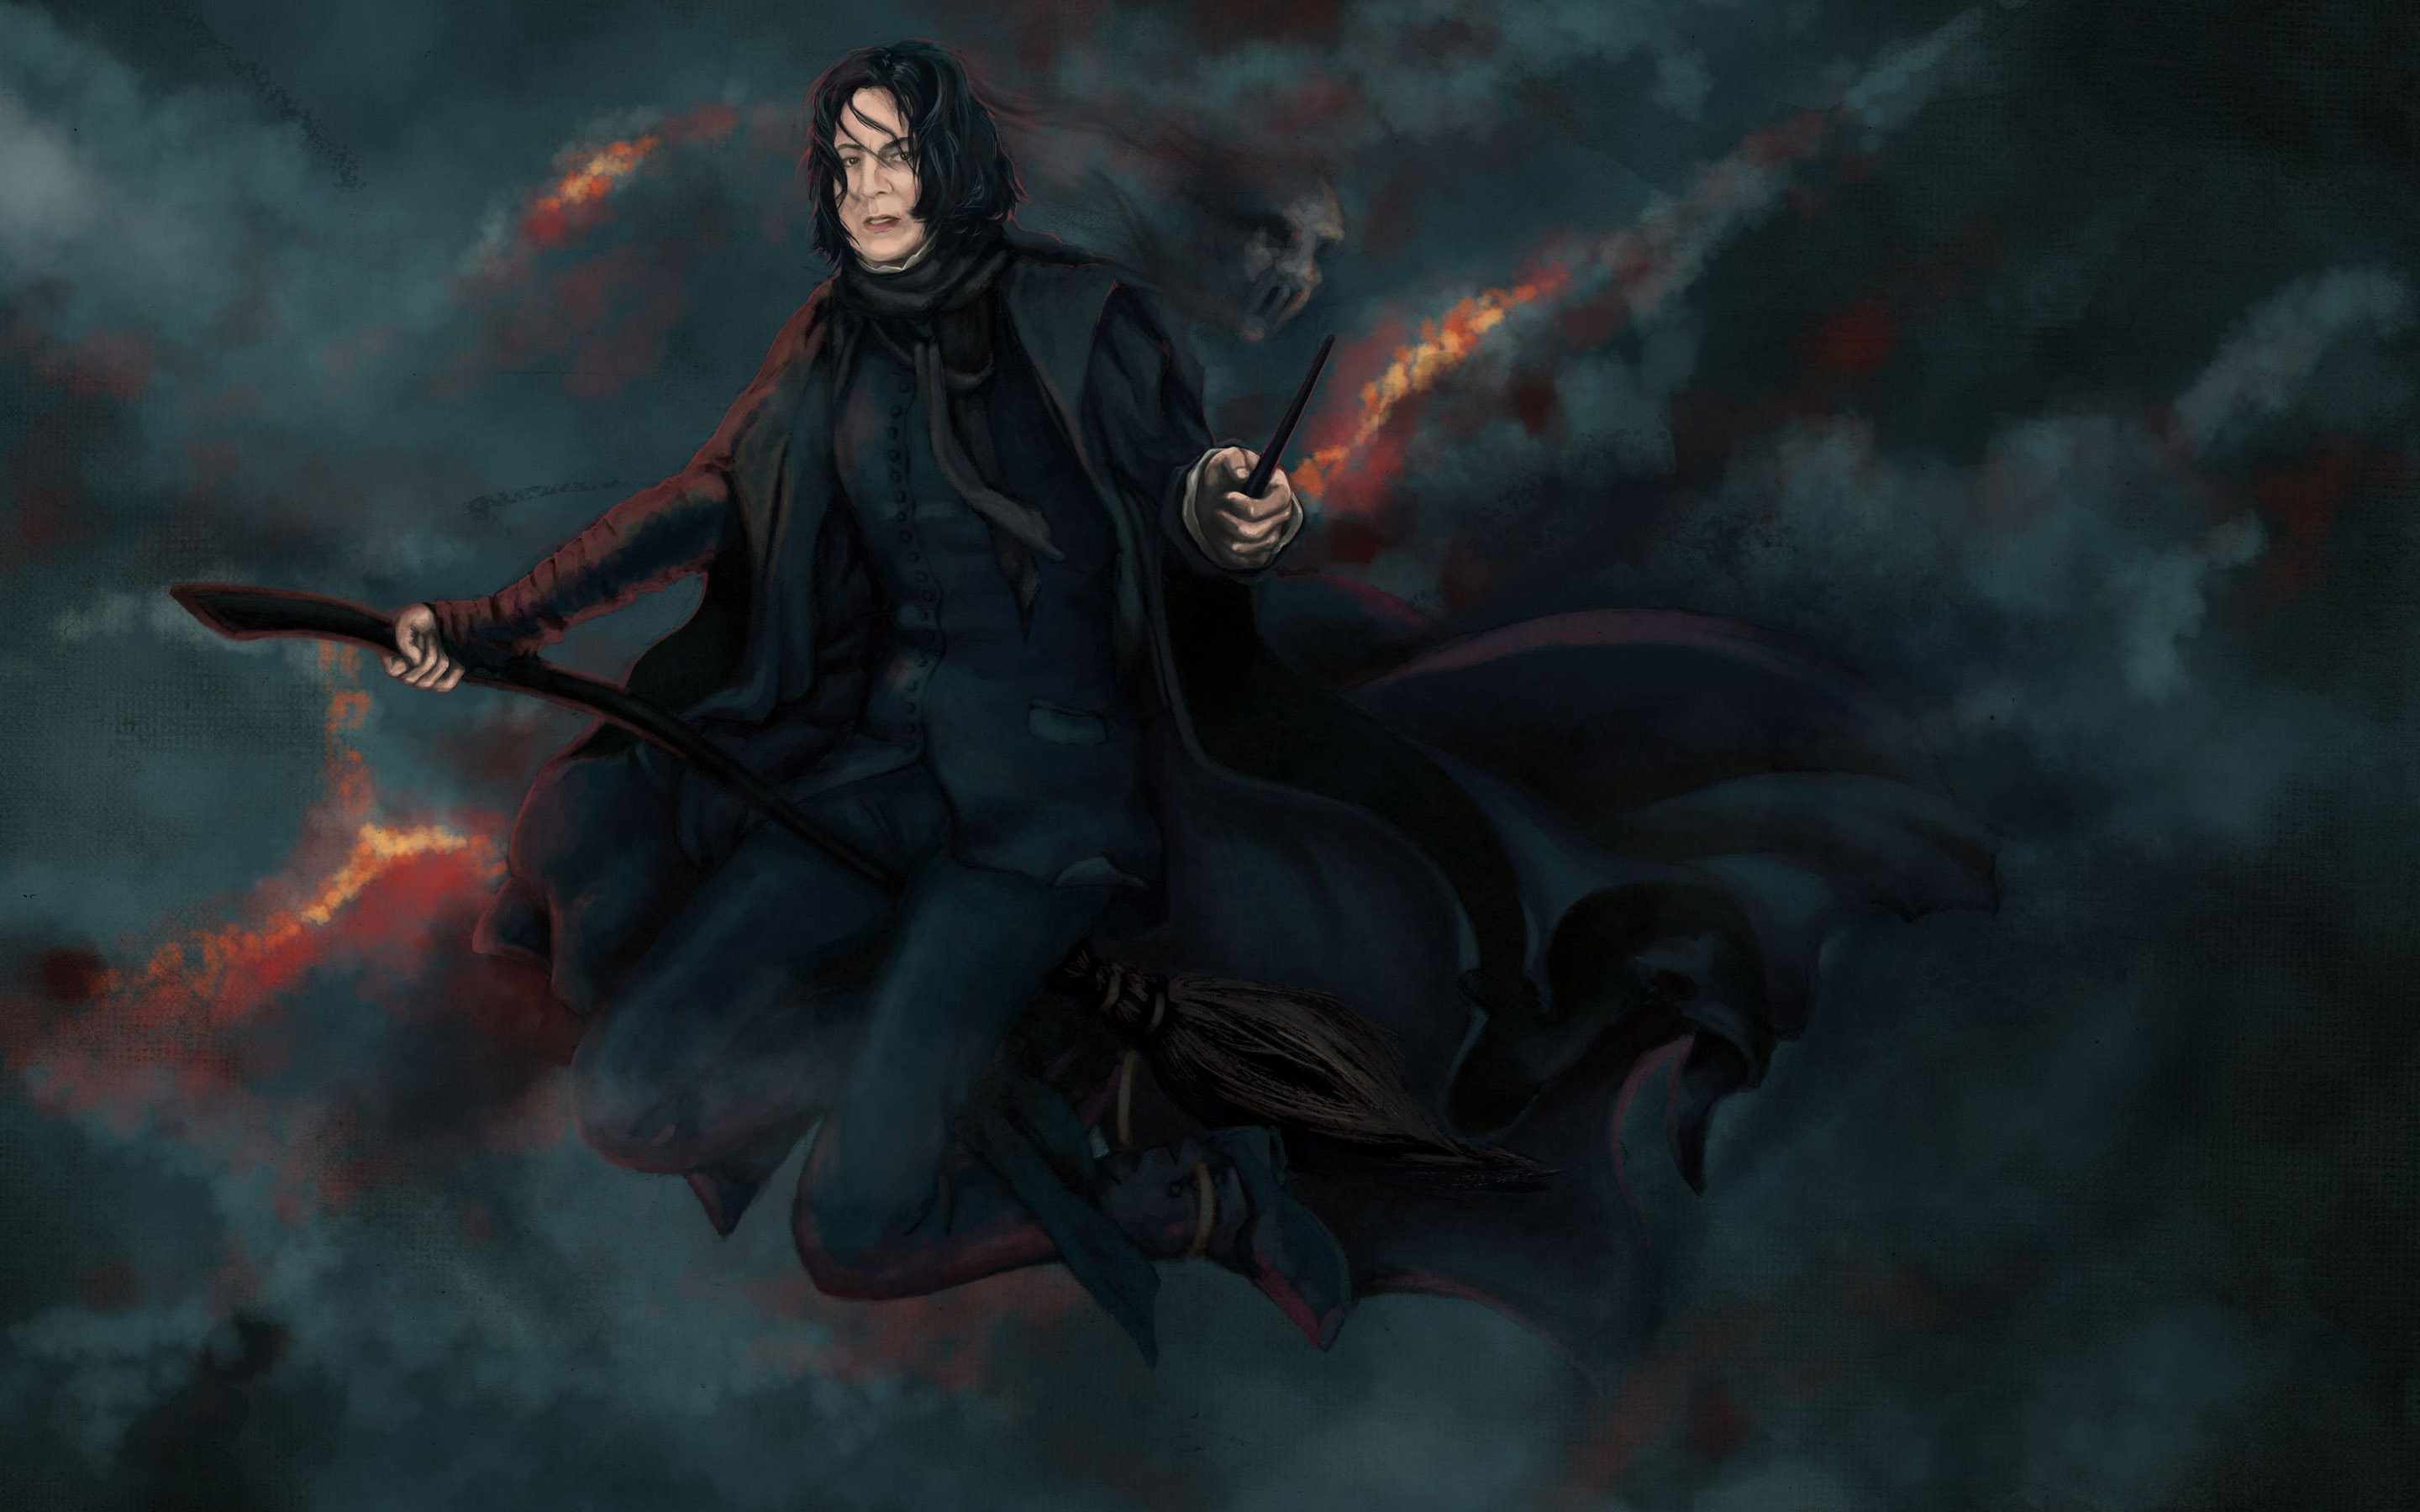 Harry Potter Wallpapers Hd: 1080p Harry Potter Wallpaper (82+ Images